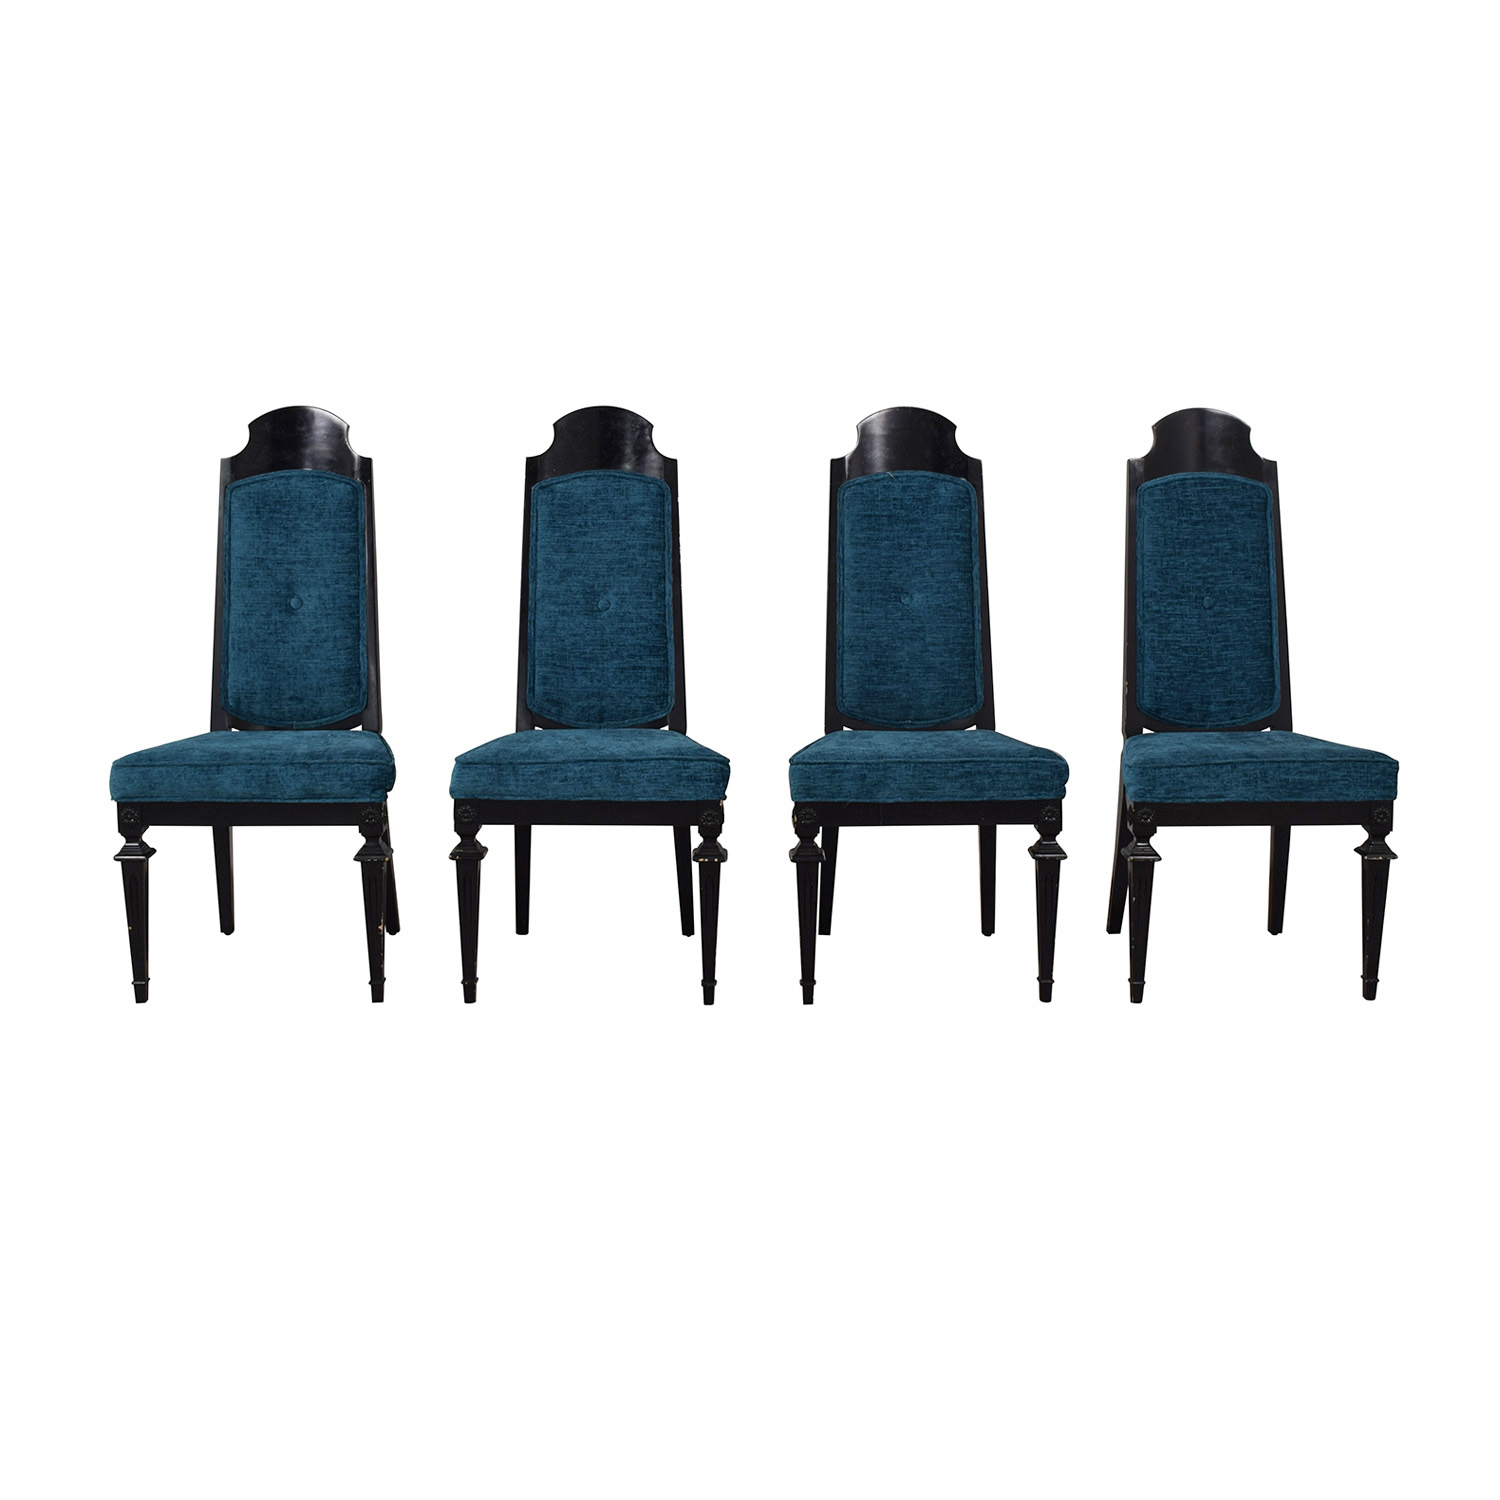 Astounding 50 Off Wayfair Wayfair Blue Cushioned Dining Room Chairs Chairs Download Free Architecture Designs Madebymaigaardcom